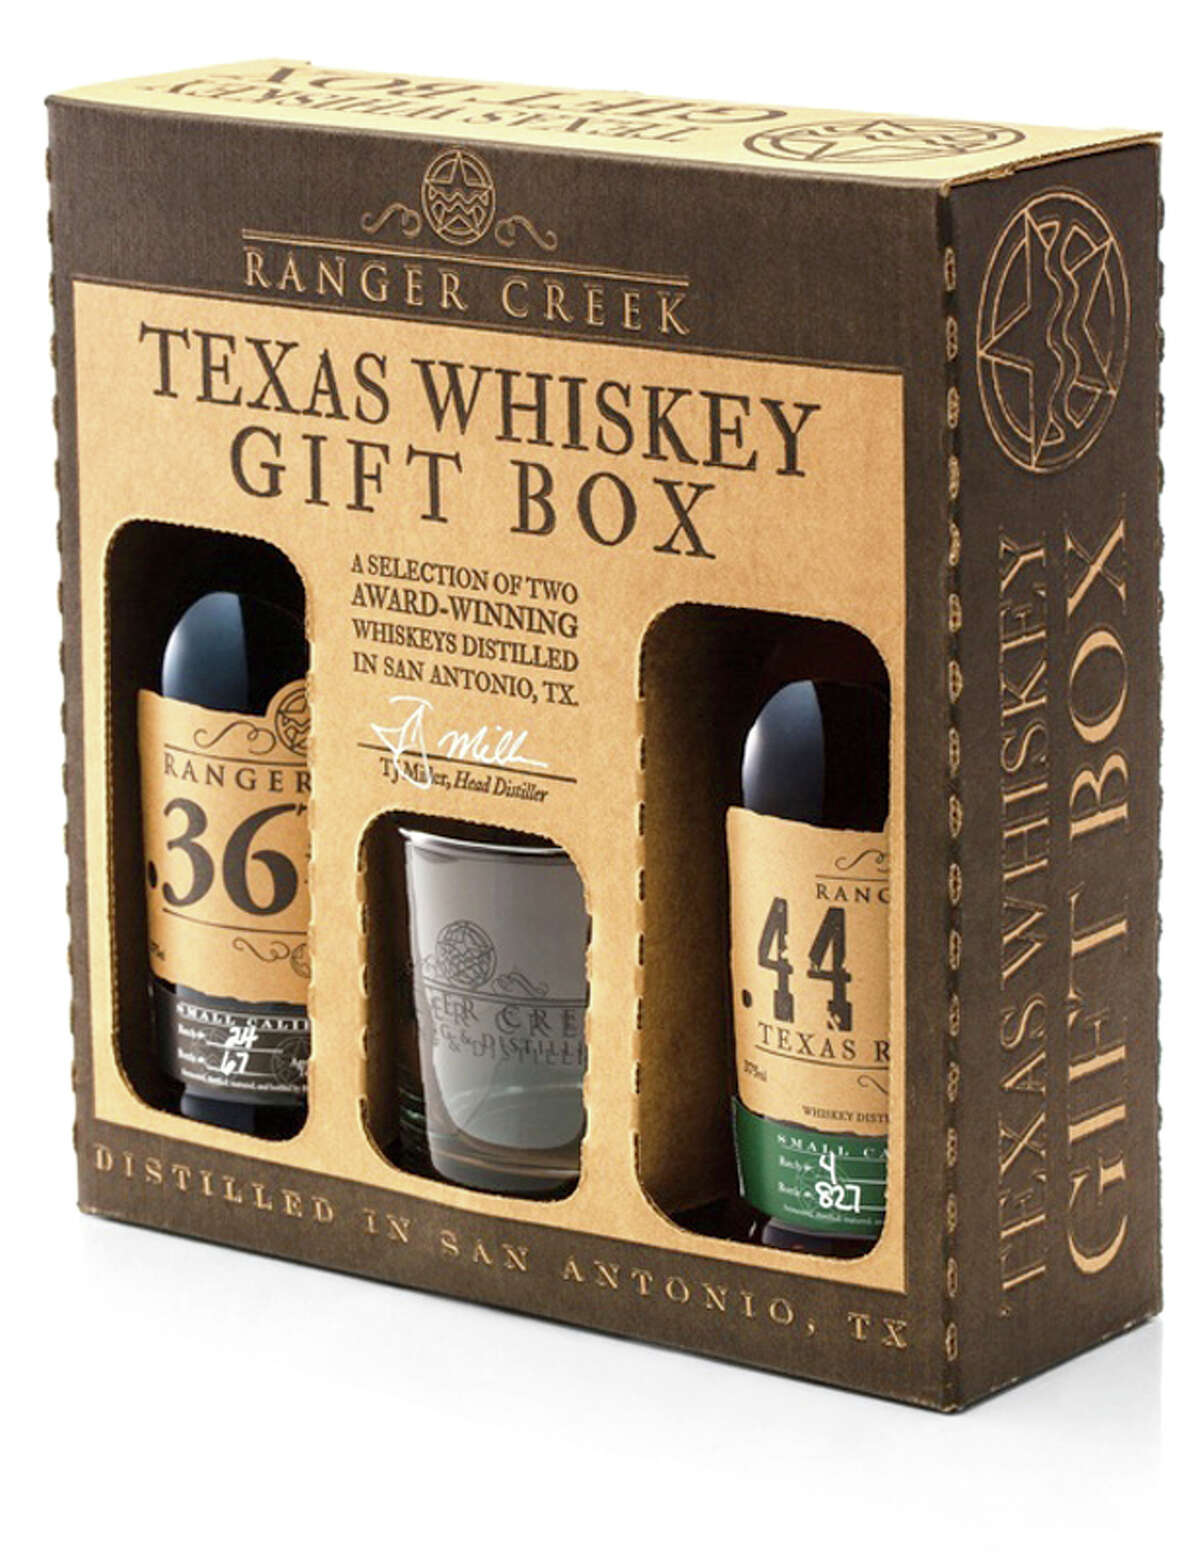 Ranger Creek Brewery & Distillery, 4834 Whirlwind Drive Treat dad this year with one of Ranger Creek's Texas Whiskey Gift Boxes. Available at Ranger Creek for a limited time for $60. Gift boxes include two of award-winning Texas whiskeys plus a lowball glass. Two options are available, the first includes .36 Bourbon and Rimfire Mesquite Smoked Single Malt. The second includes our .36 Bourbon and .44 Texas Rye. www.drinkrangercreek.com